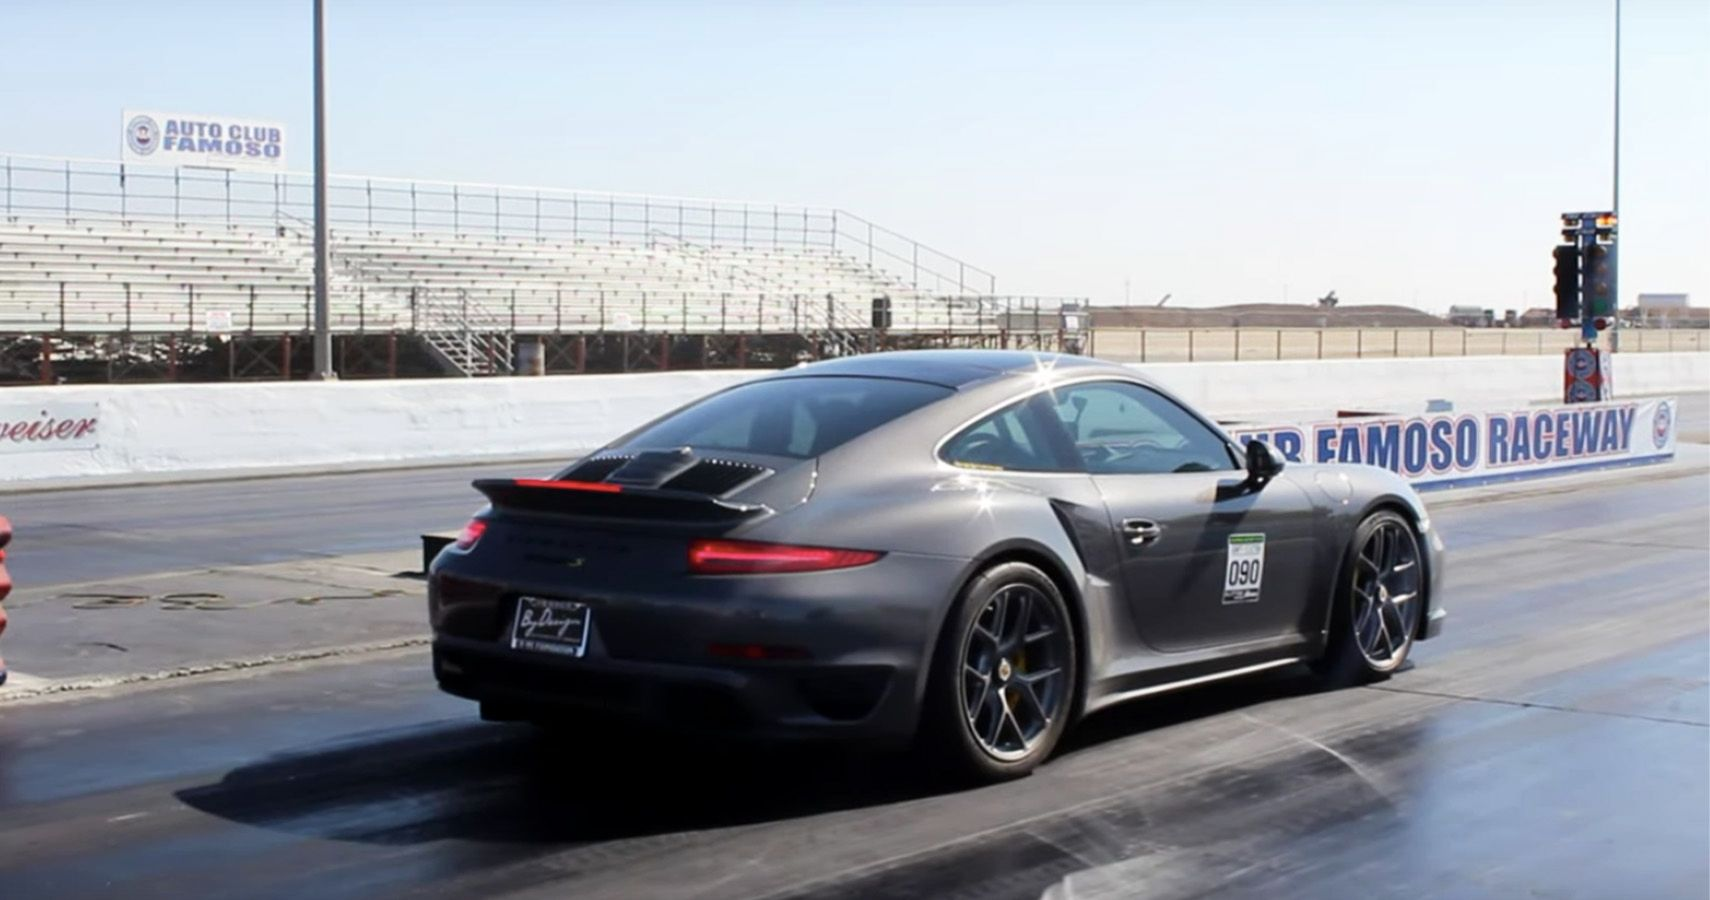 Watch This 1,100-HP Porsche Turbo Pop Wheelies At The Strip - HotCars